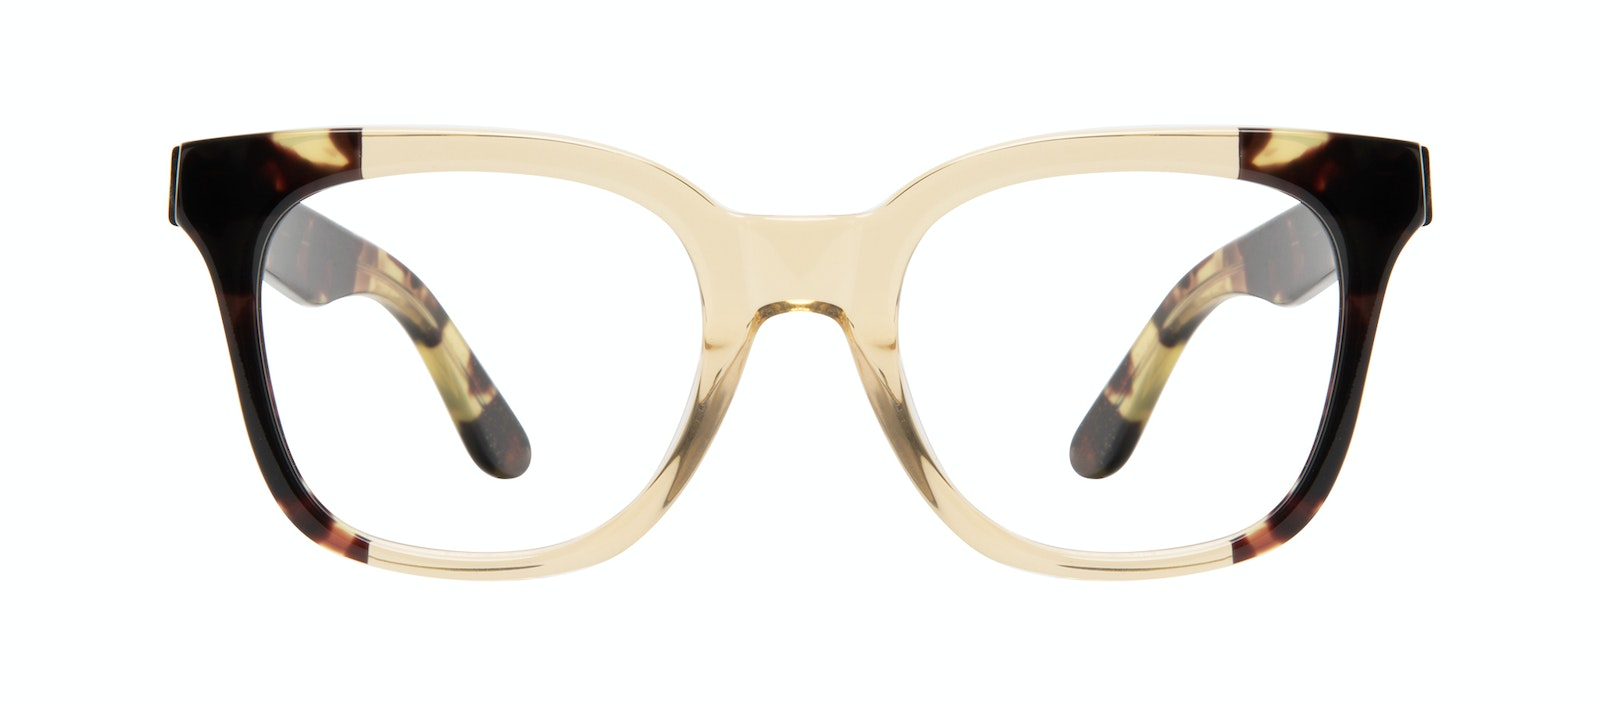 Affordable Fashion Glasses Square Eyeglasses Women Mighty Golden Tort Front